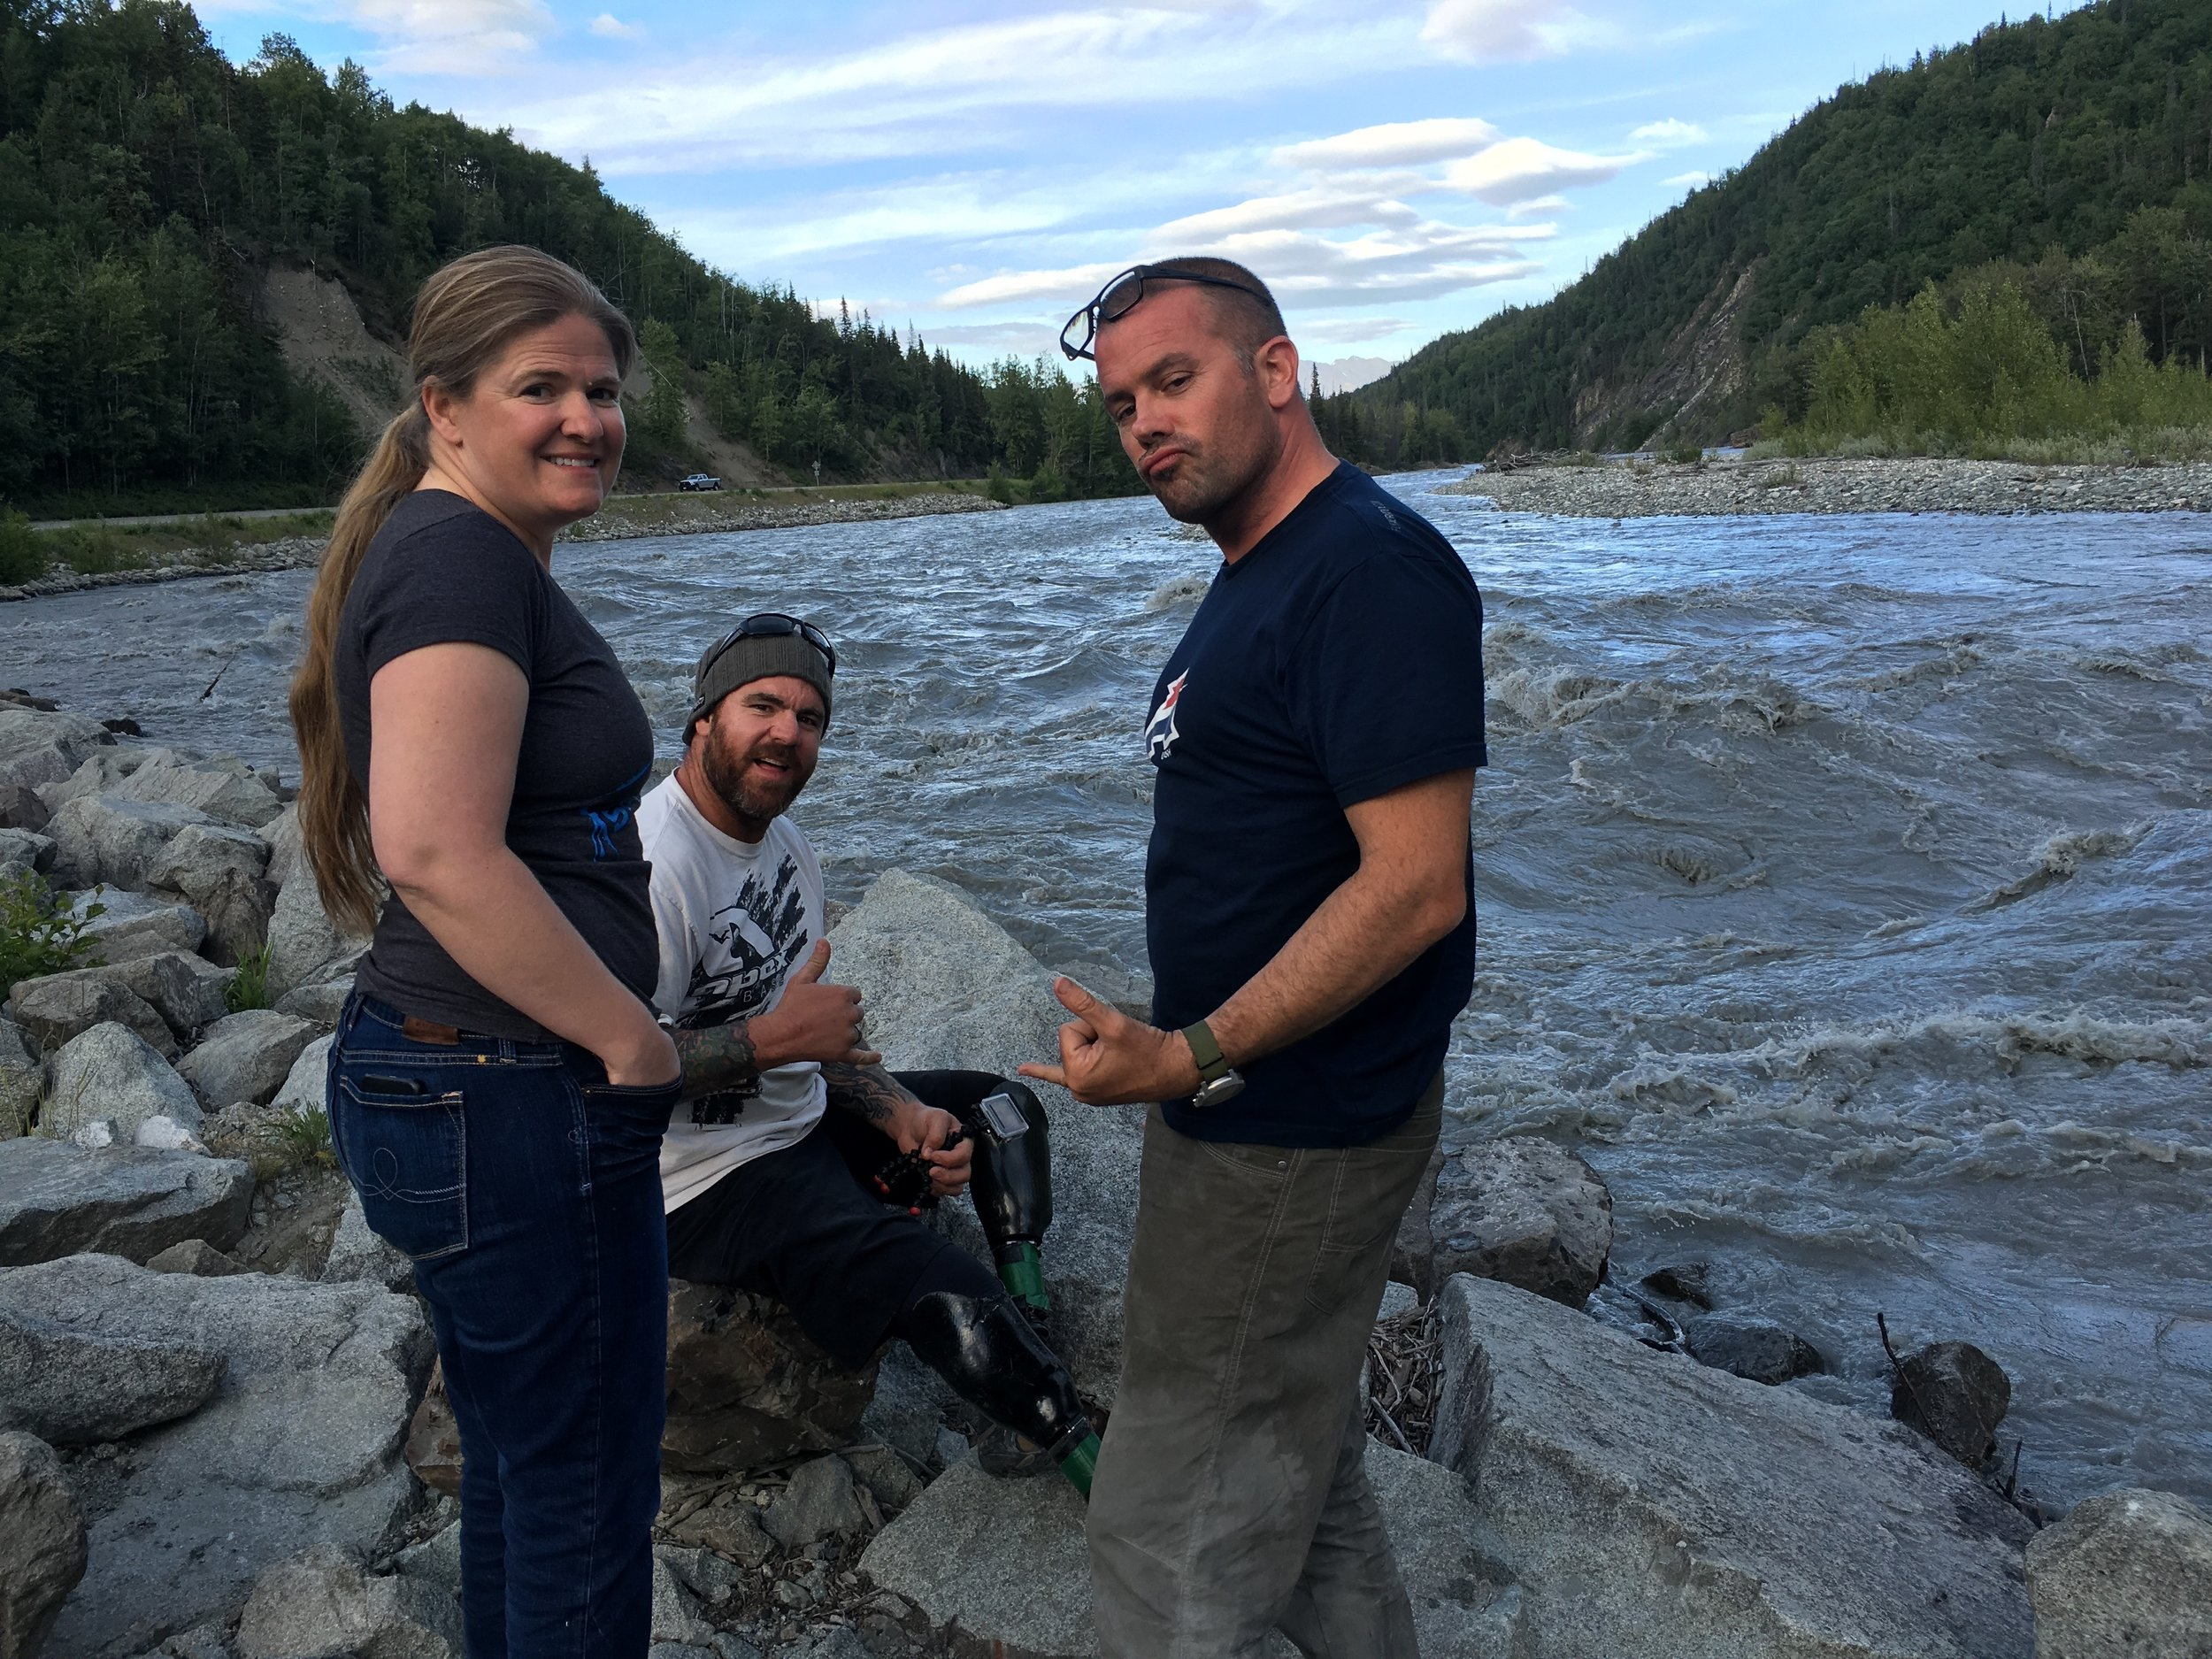 Another amazing stop along the road from Palmer to Matanuska Glacier. The river was moving fast!